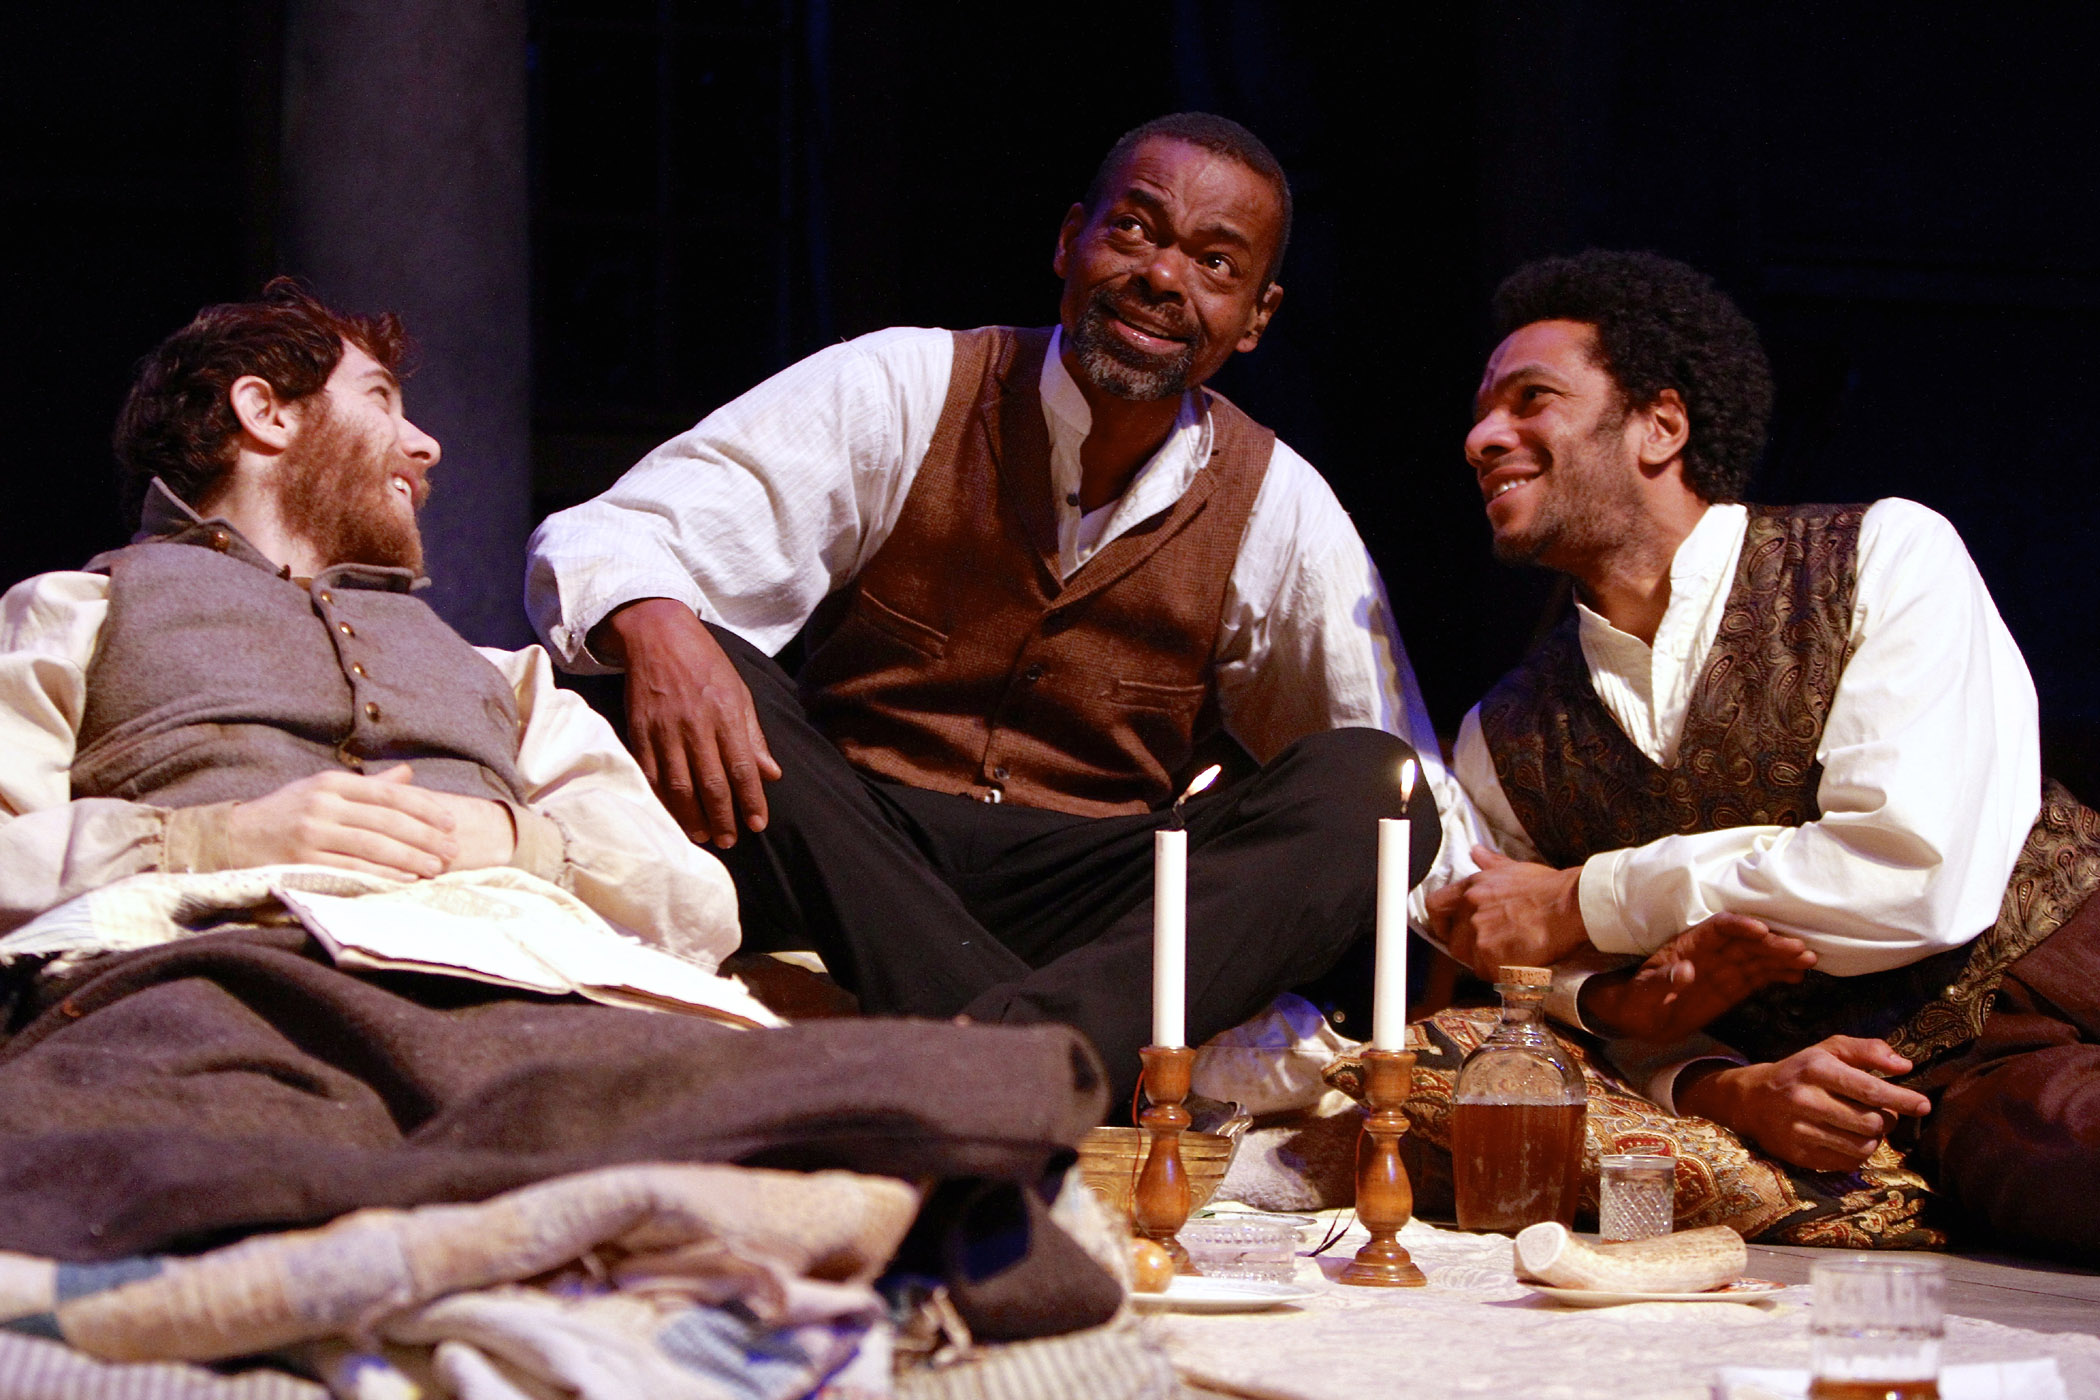 Gregory Perri (Caleb), Jonathan Peck (Simon), and Biko Eisen-Martin (John) in the Syracuse Stage production of The Whipping Man. Photographer Michael Davis.